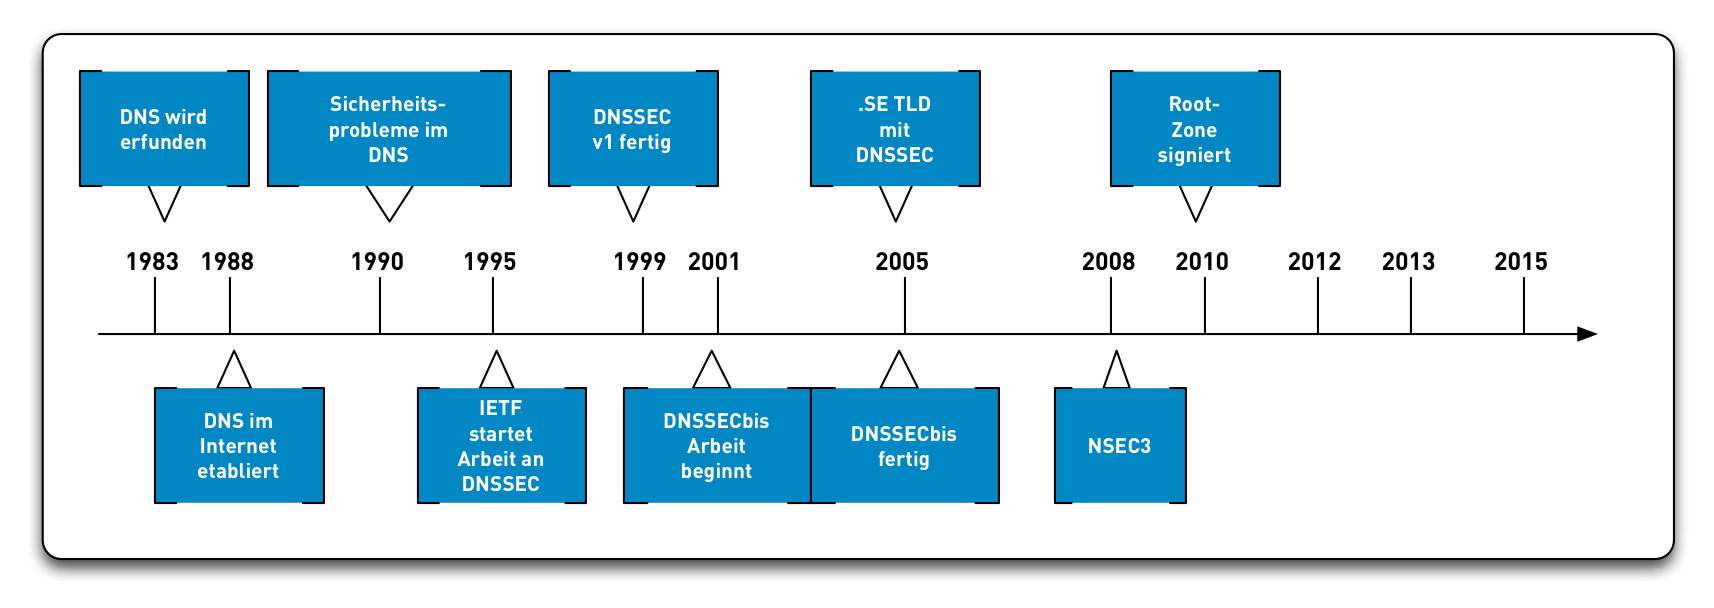 DNSSEC-History11.png